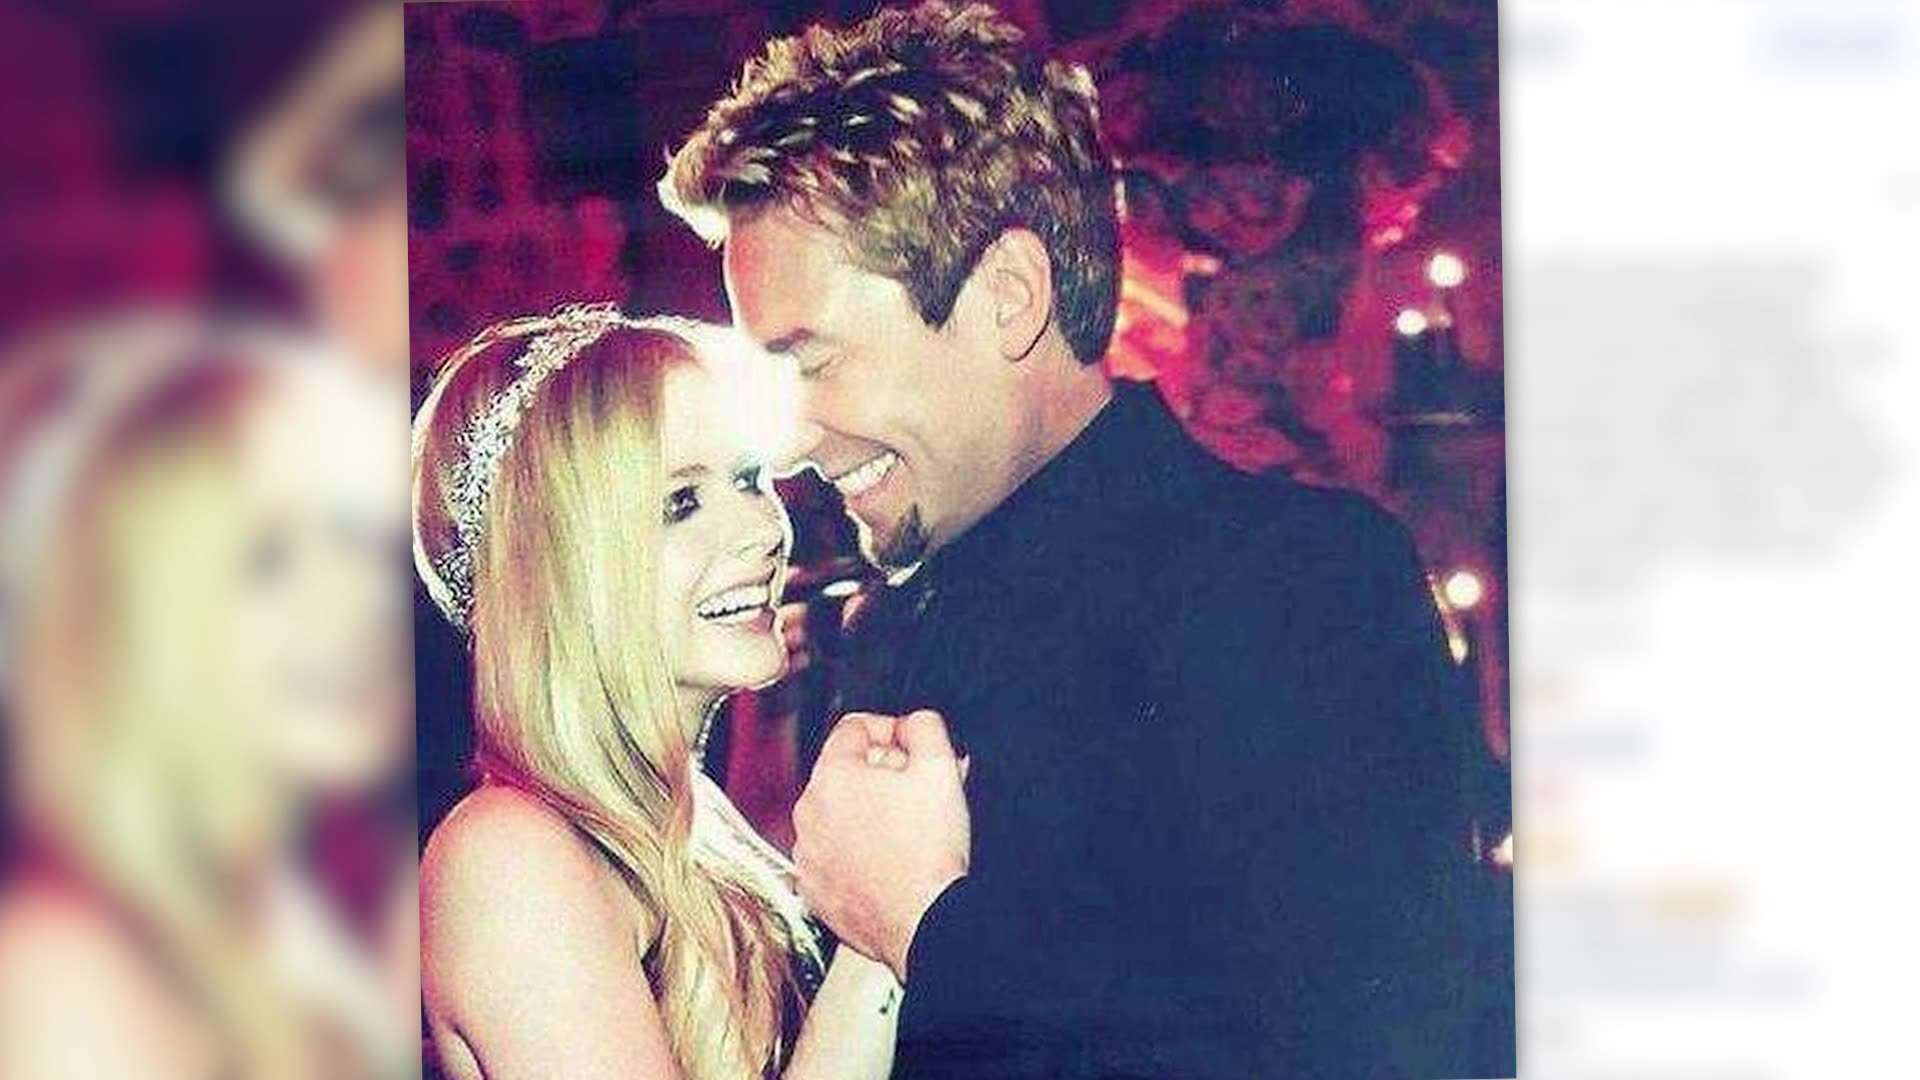 Avril Lavigne Announces Her Separation From Chad Kroeger